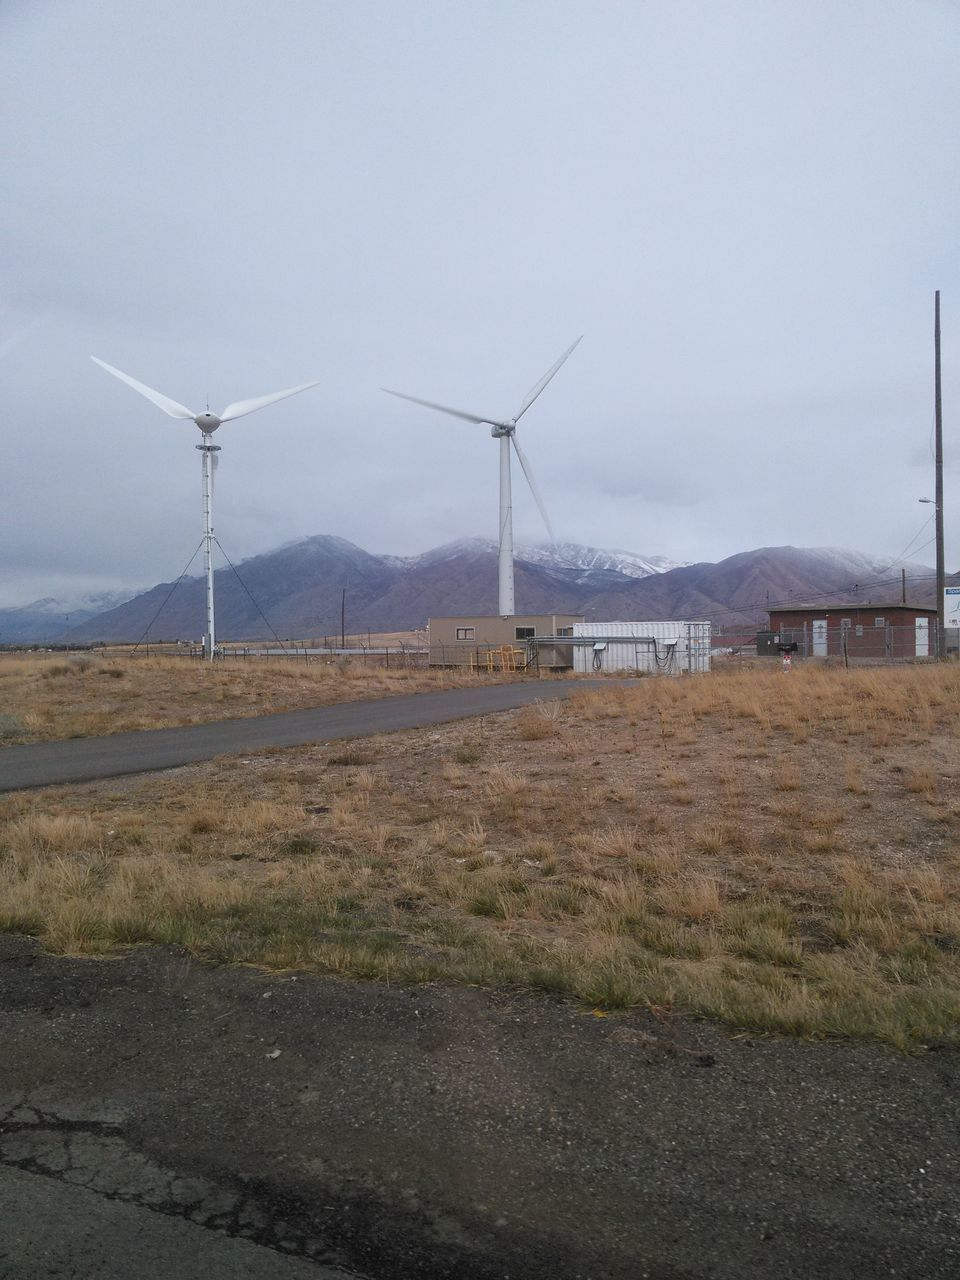 environmental conservation, wind turbine, wind power, alternative energy, renewable energy, fuel and power generation, windmill, industrial windmill, field, day, outdoors, no people, nature, landscape, rural scene, traditional windmill, mountain, sky, grass, beauty in nature